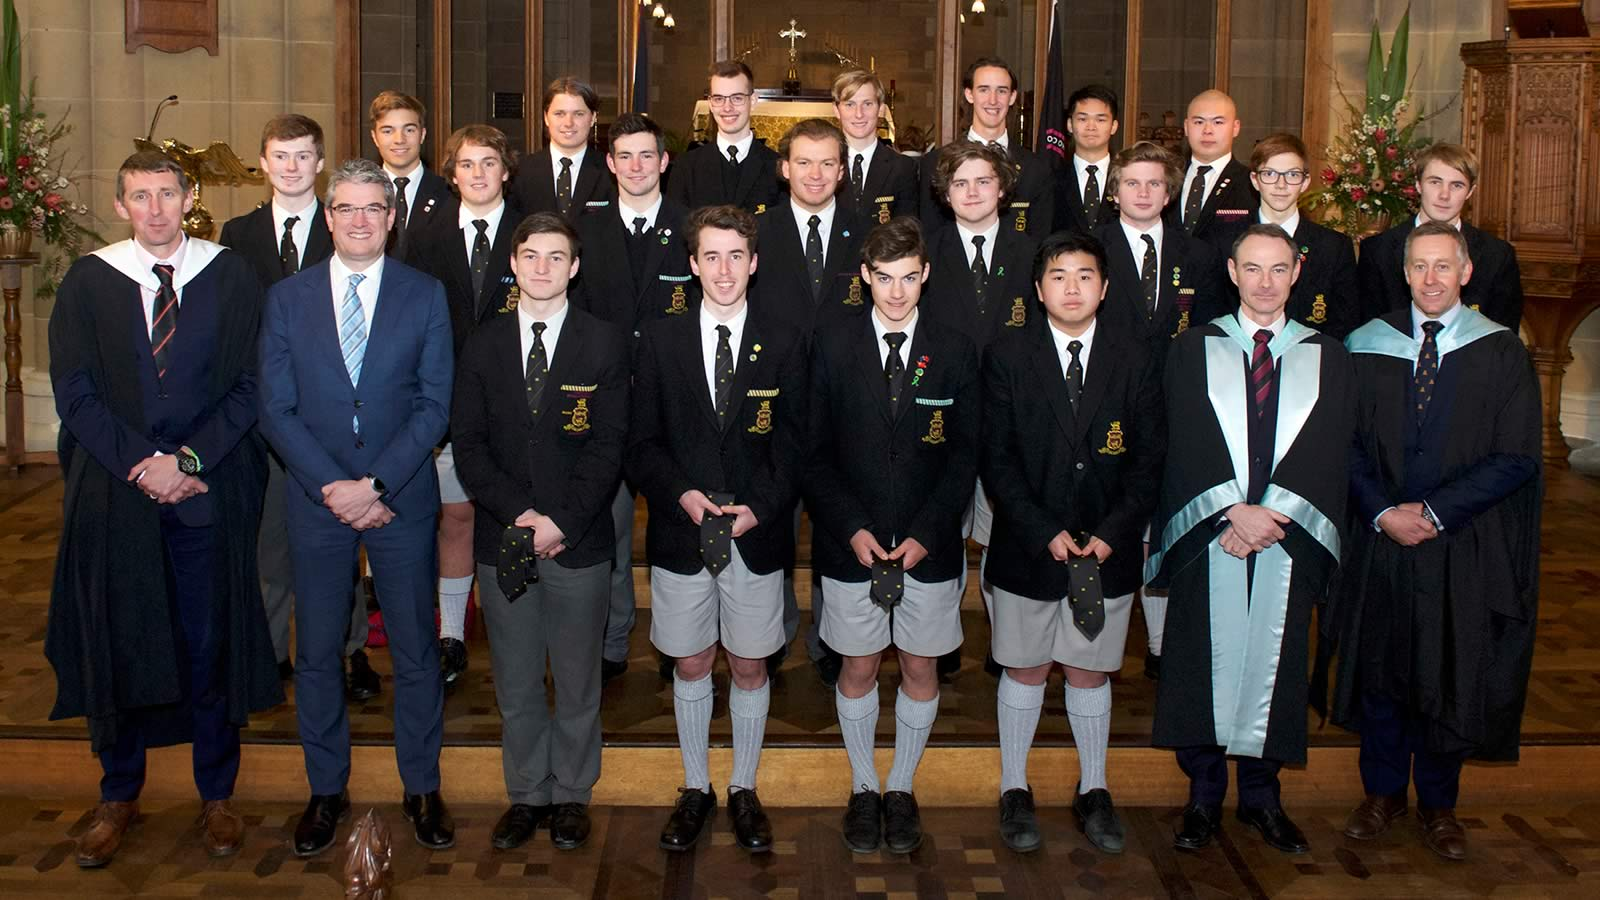 2019 Anniversary Tie recipients with Mr Richard Davies (Deputy Headmaster), Mr Gene Phair (Chairman of the Board), Dr Rob McEwan (Headmaster) and Mr Roger McNamara (Head of Senior School).